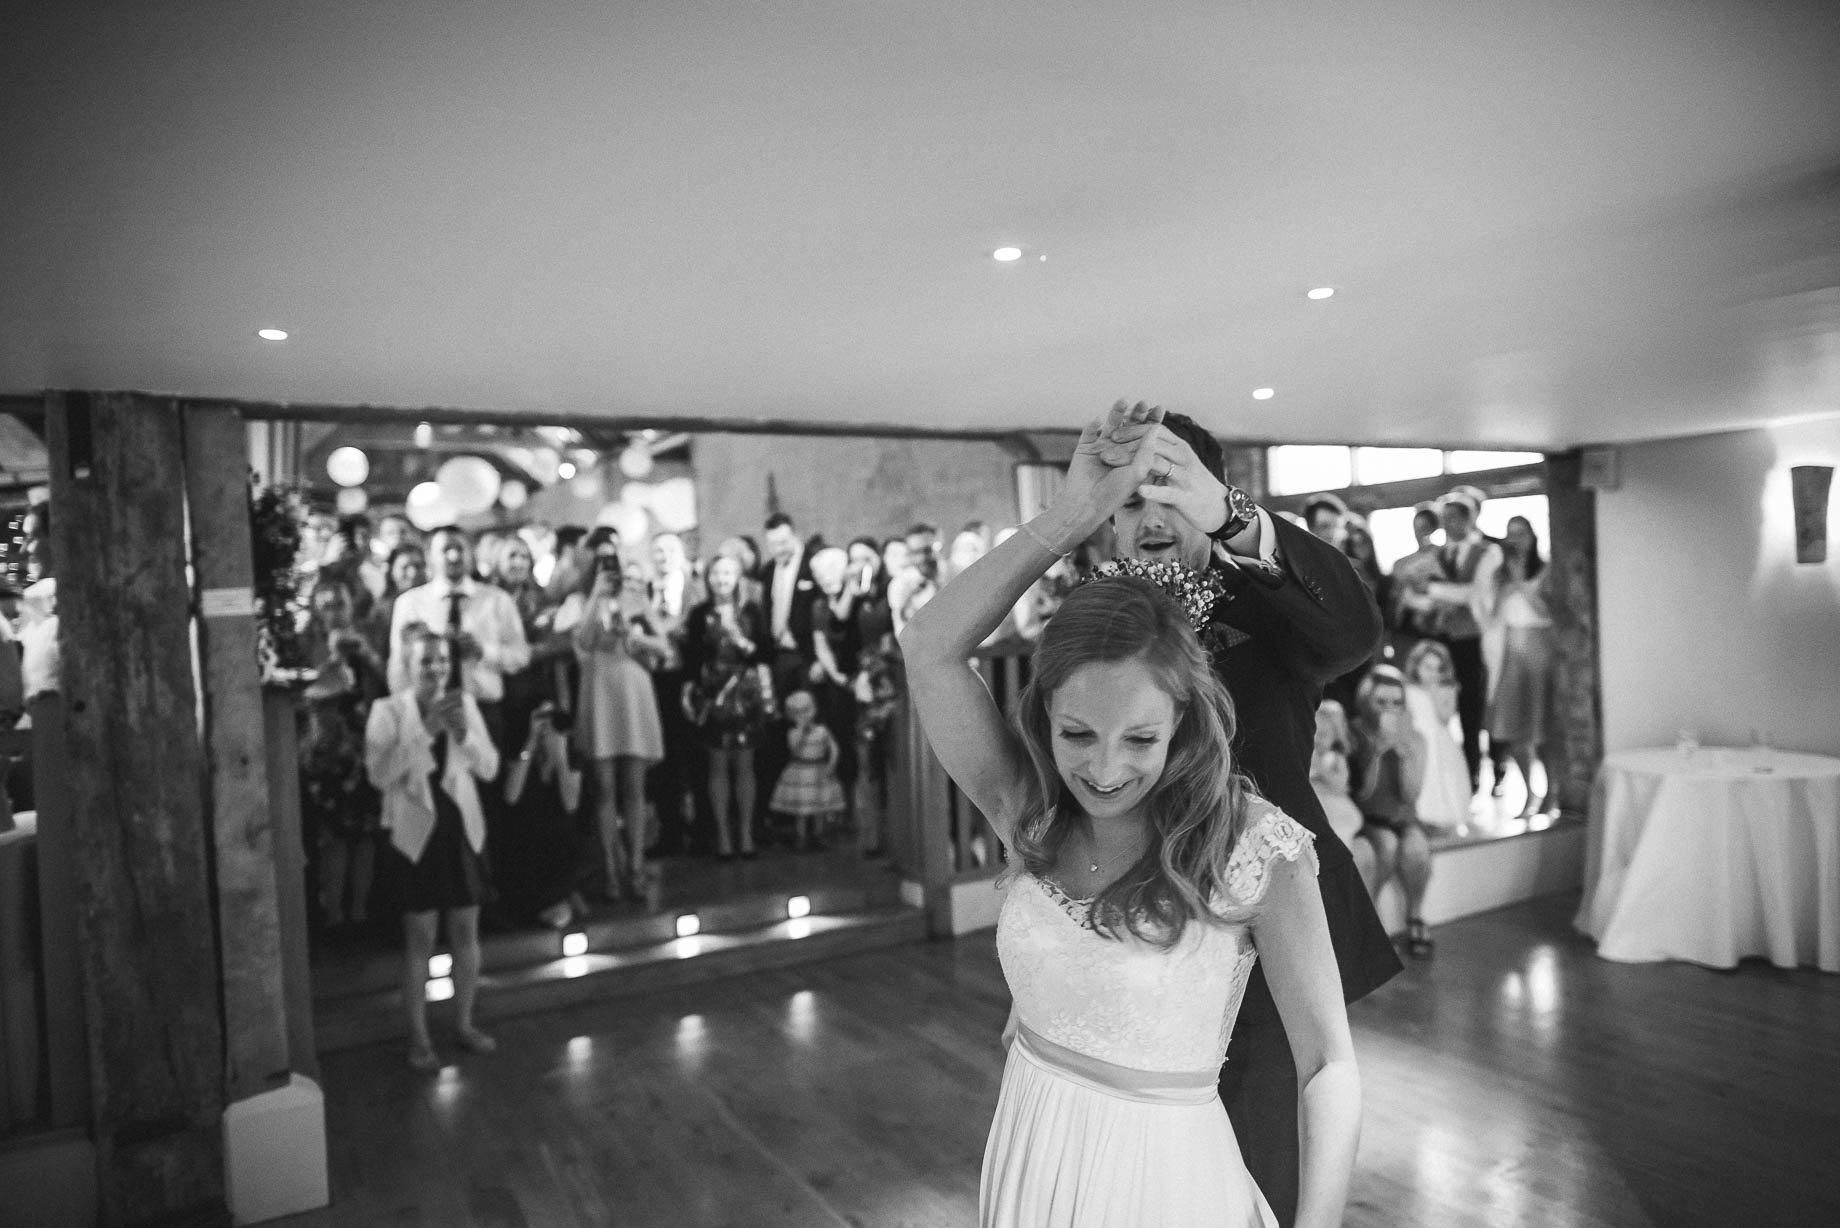 Bury Court Barn wedding photography by Guy Collier - Heather and Pat (159 of 170)